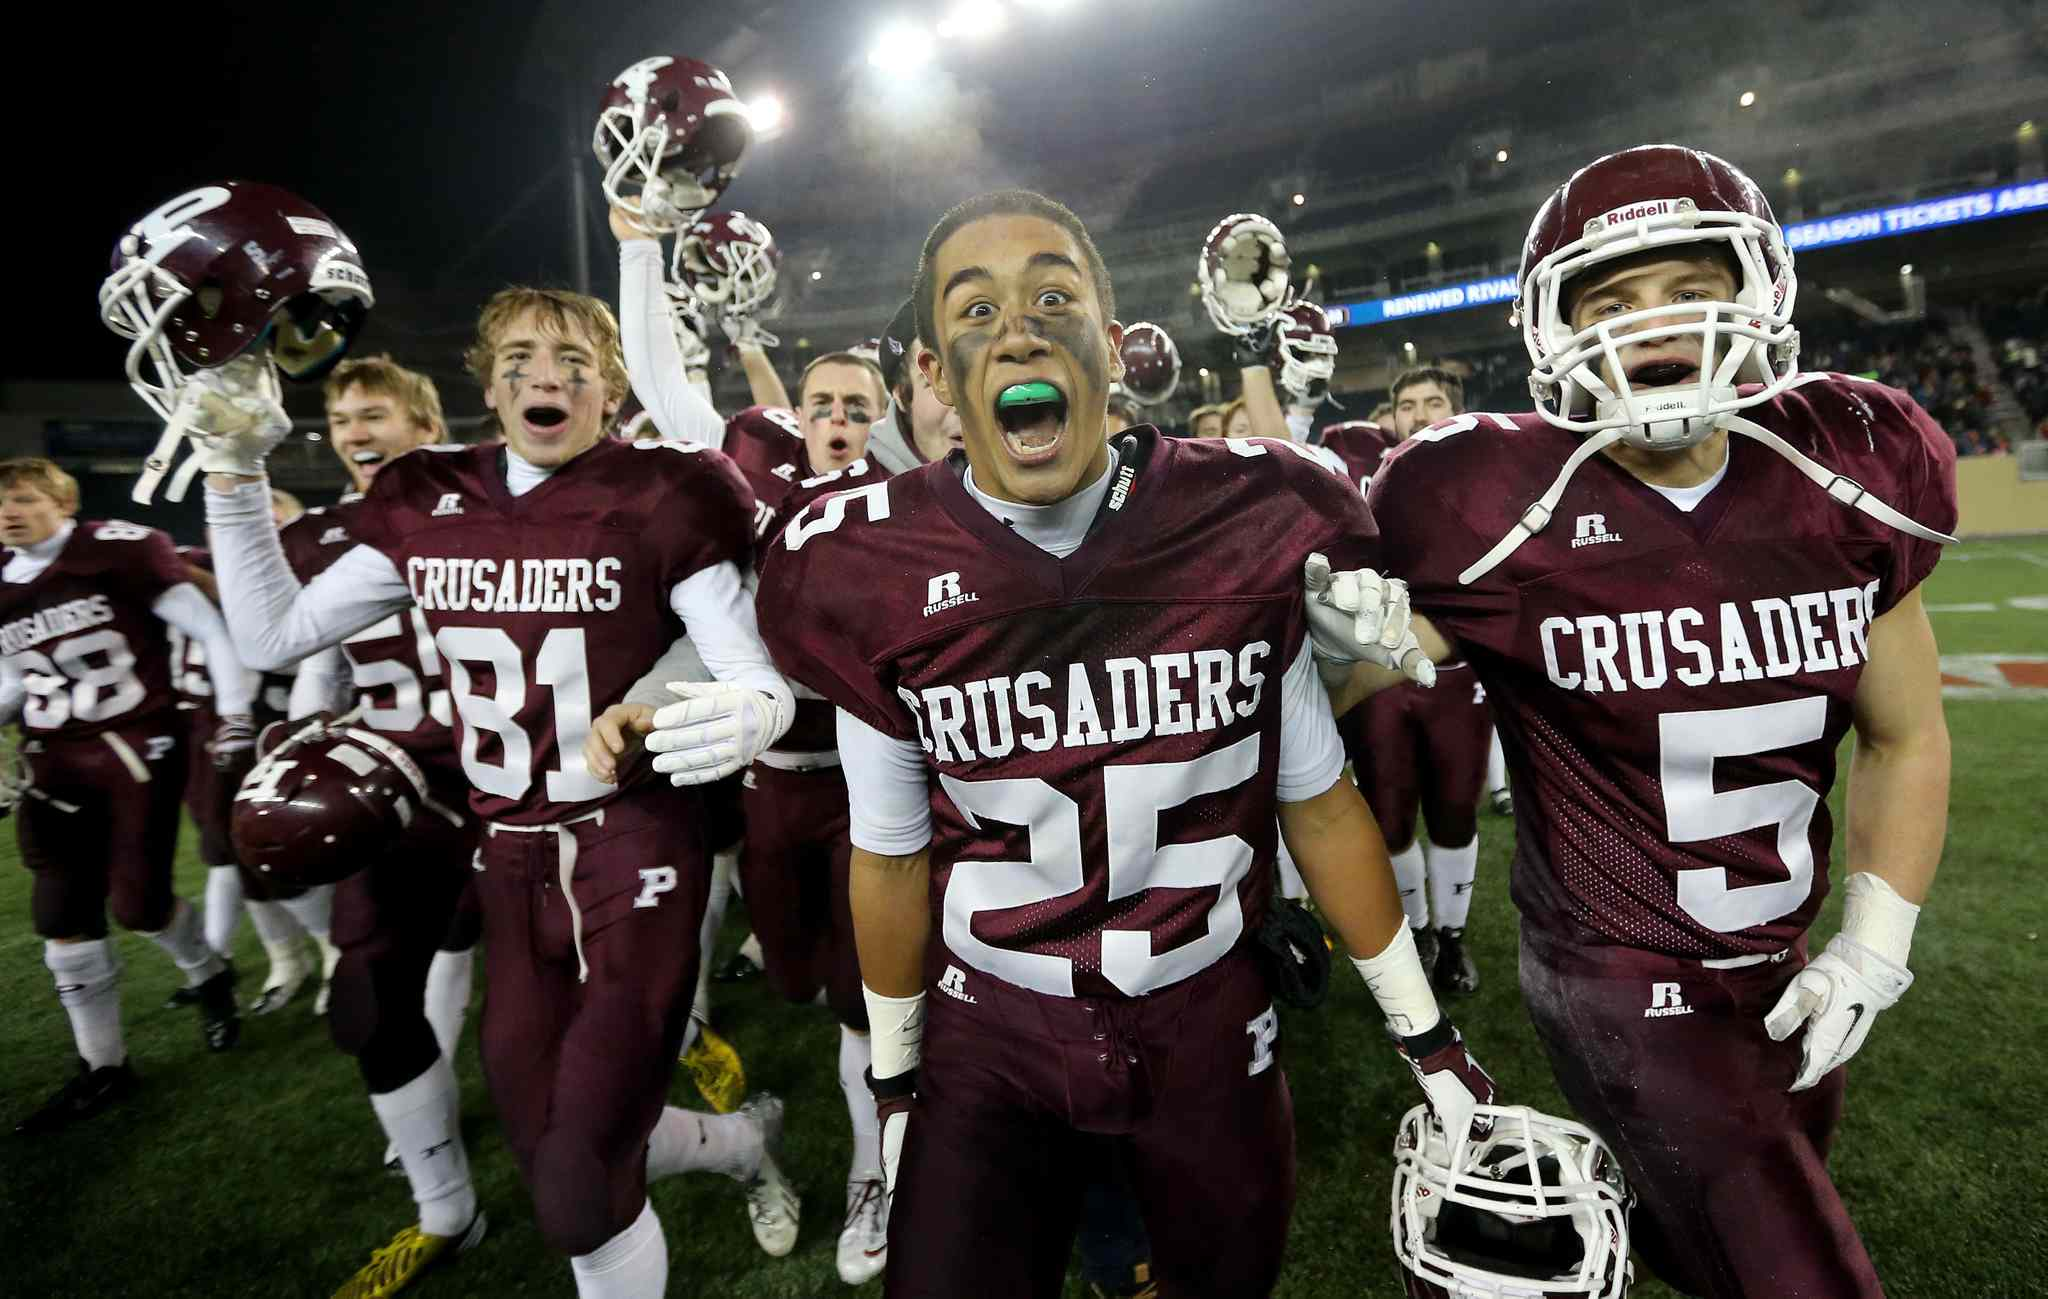 Matt MacDonald (81), Cody Cranston (25) and Teagan Horton (5) of the St. Paul's Crusaders celebrate their Anavets Bowl victory.